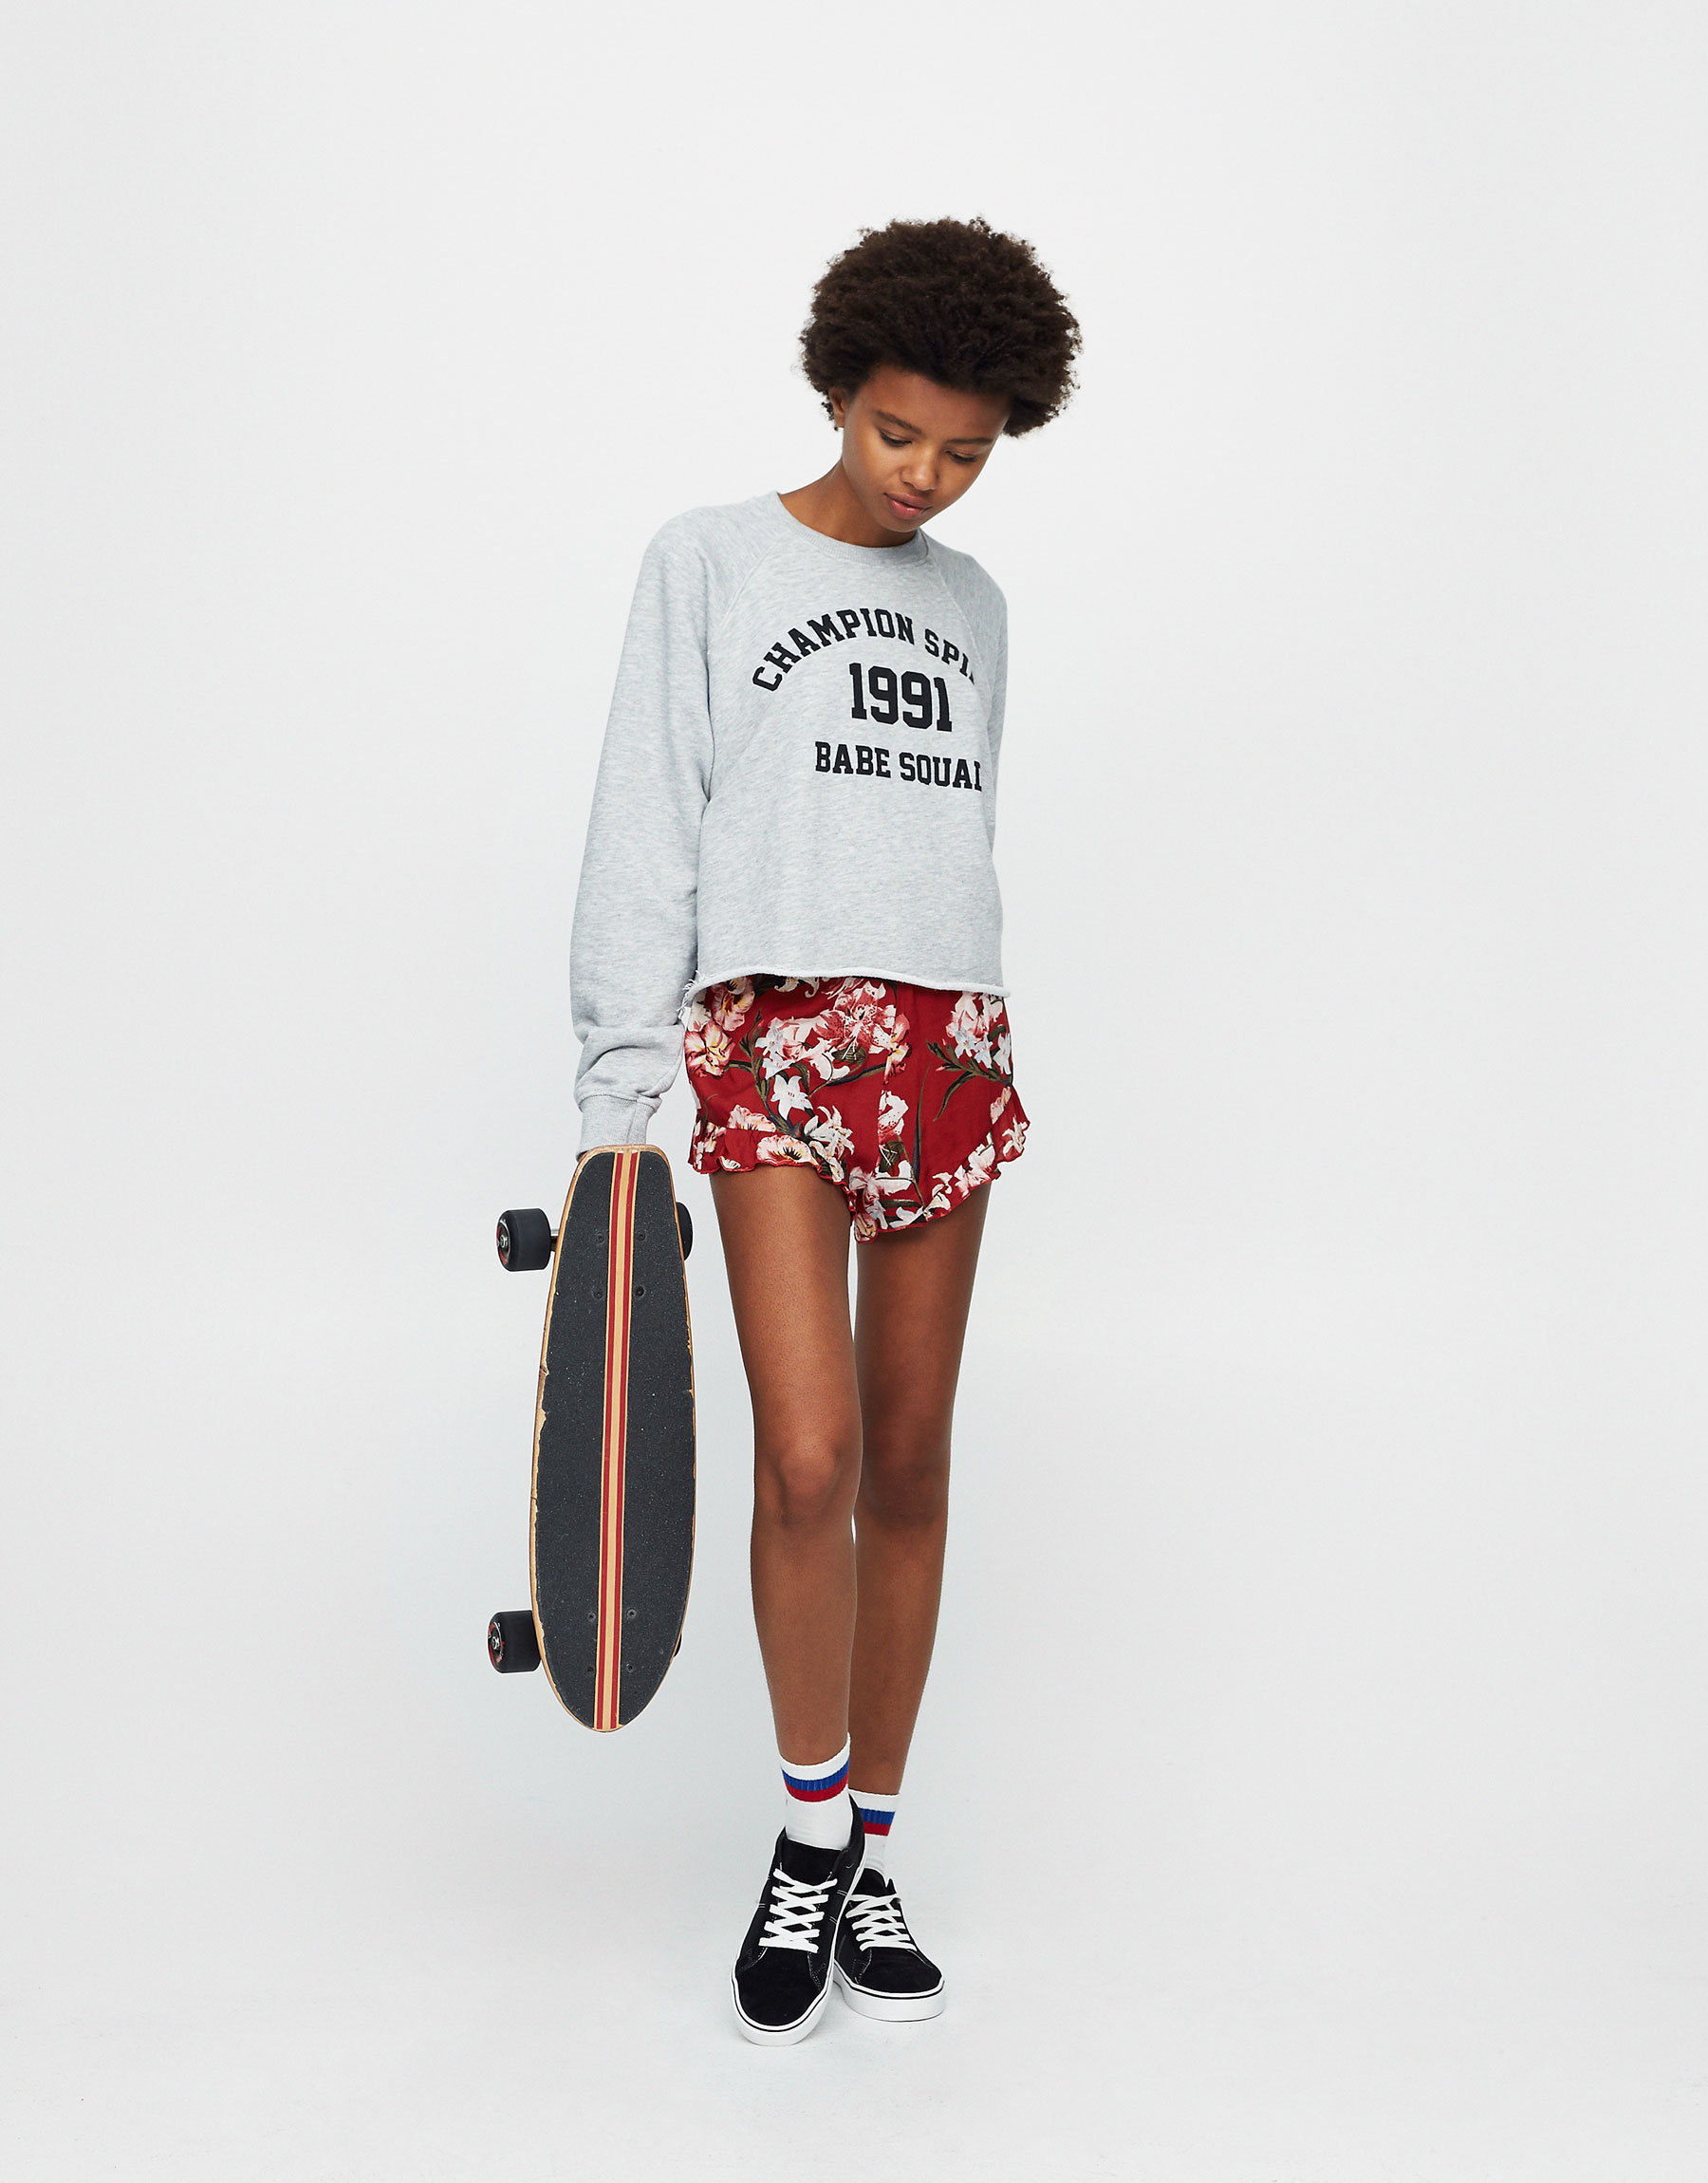 Printed sweatshirt with 'Gang' slogan